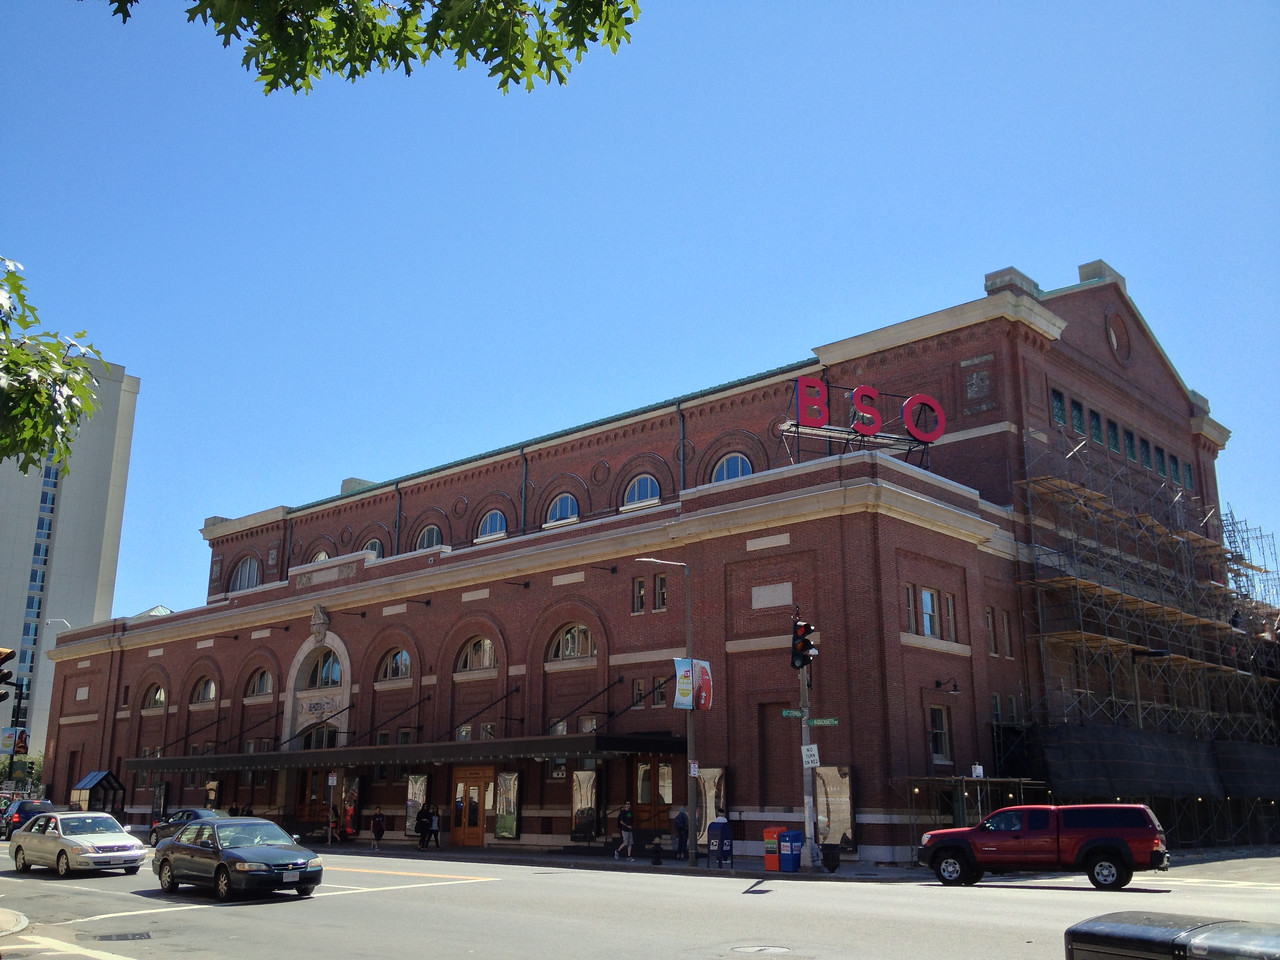 Symphony Hall, home of the Boston Symphony Orchestra. I picked up my next Hubway bike just down the street.